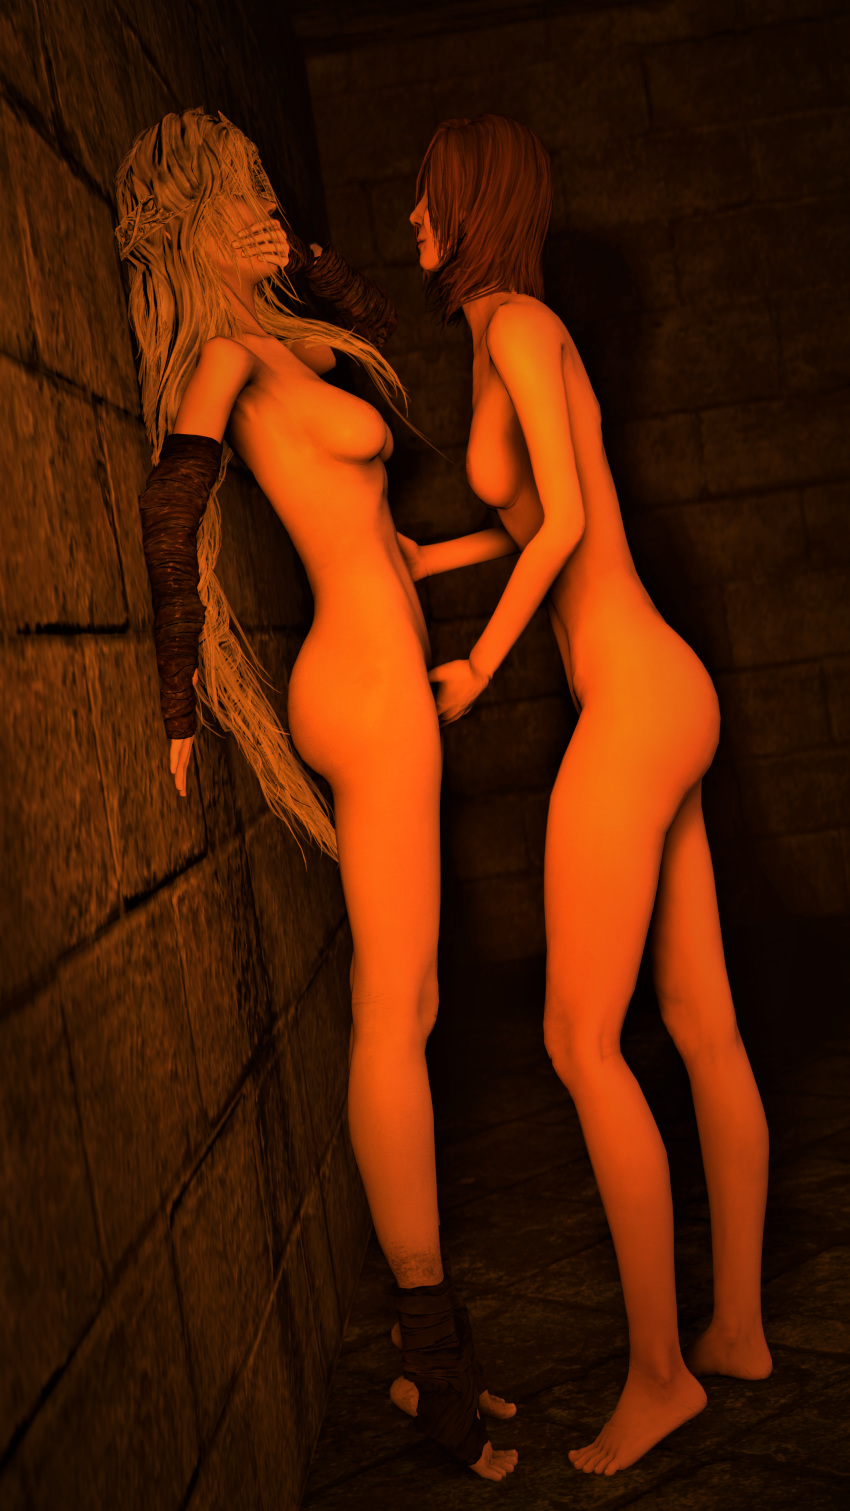 souls forked 3 dark tongue King of the hill nude gif